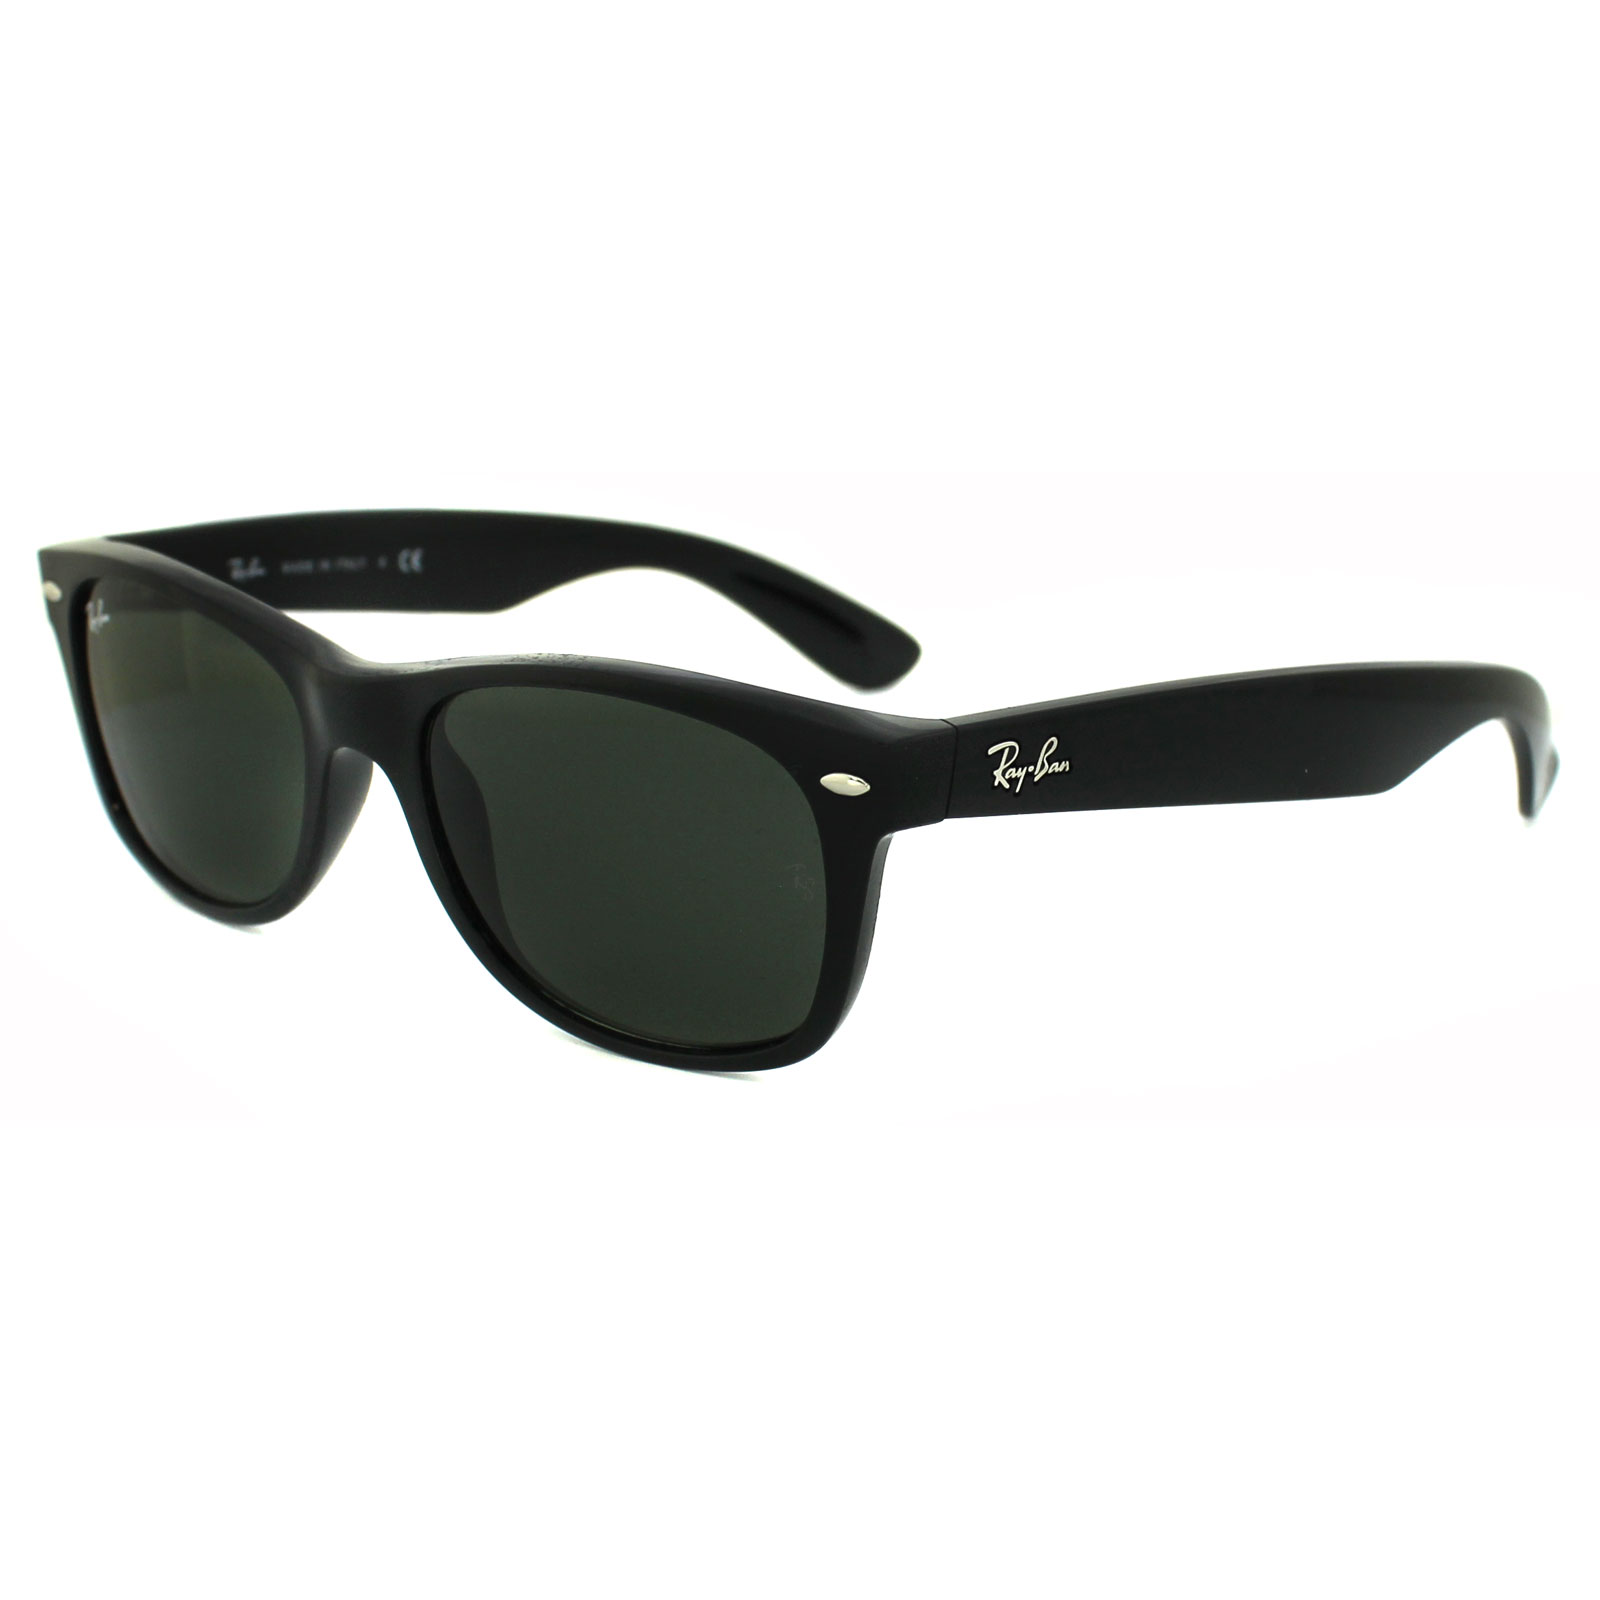 ray ban wayfarer with prescription lenses  rayban sunglasses new wayfarer 2132 901 black 52mm